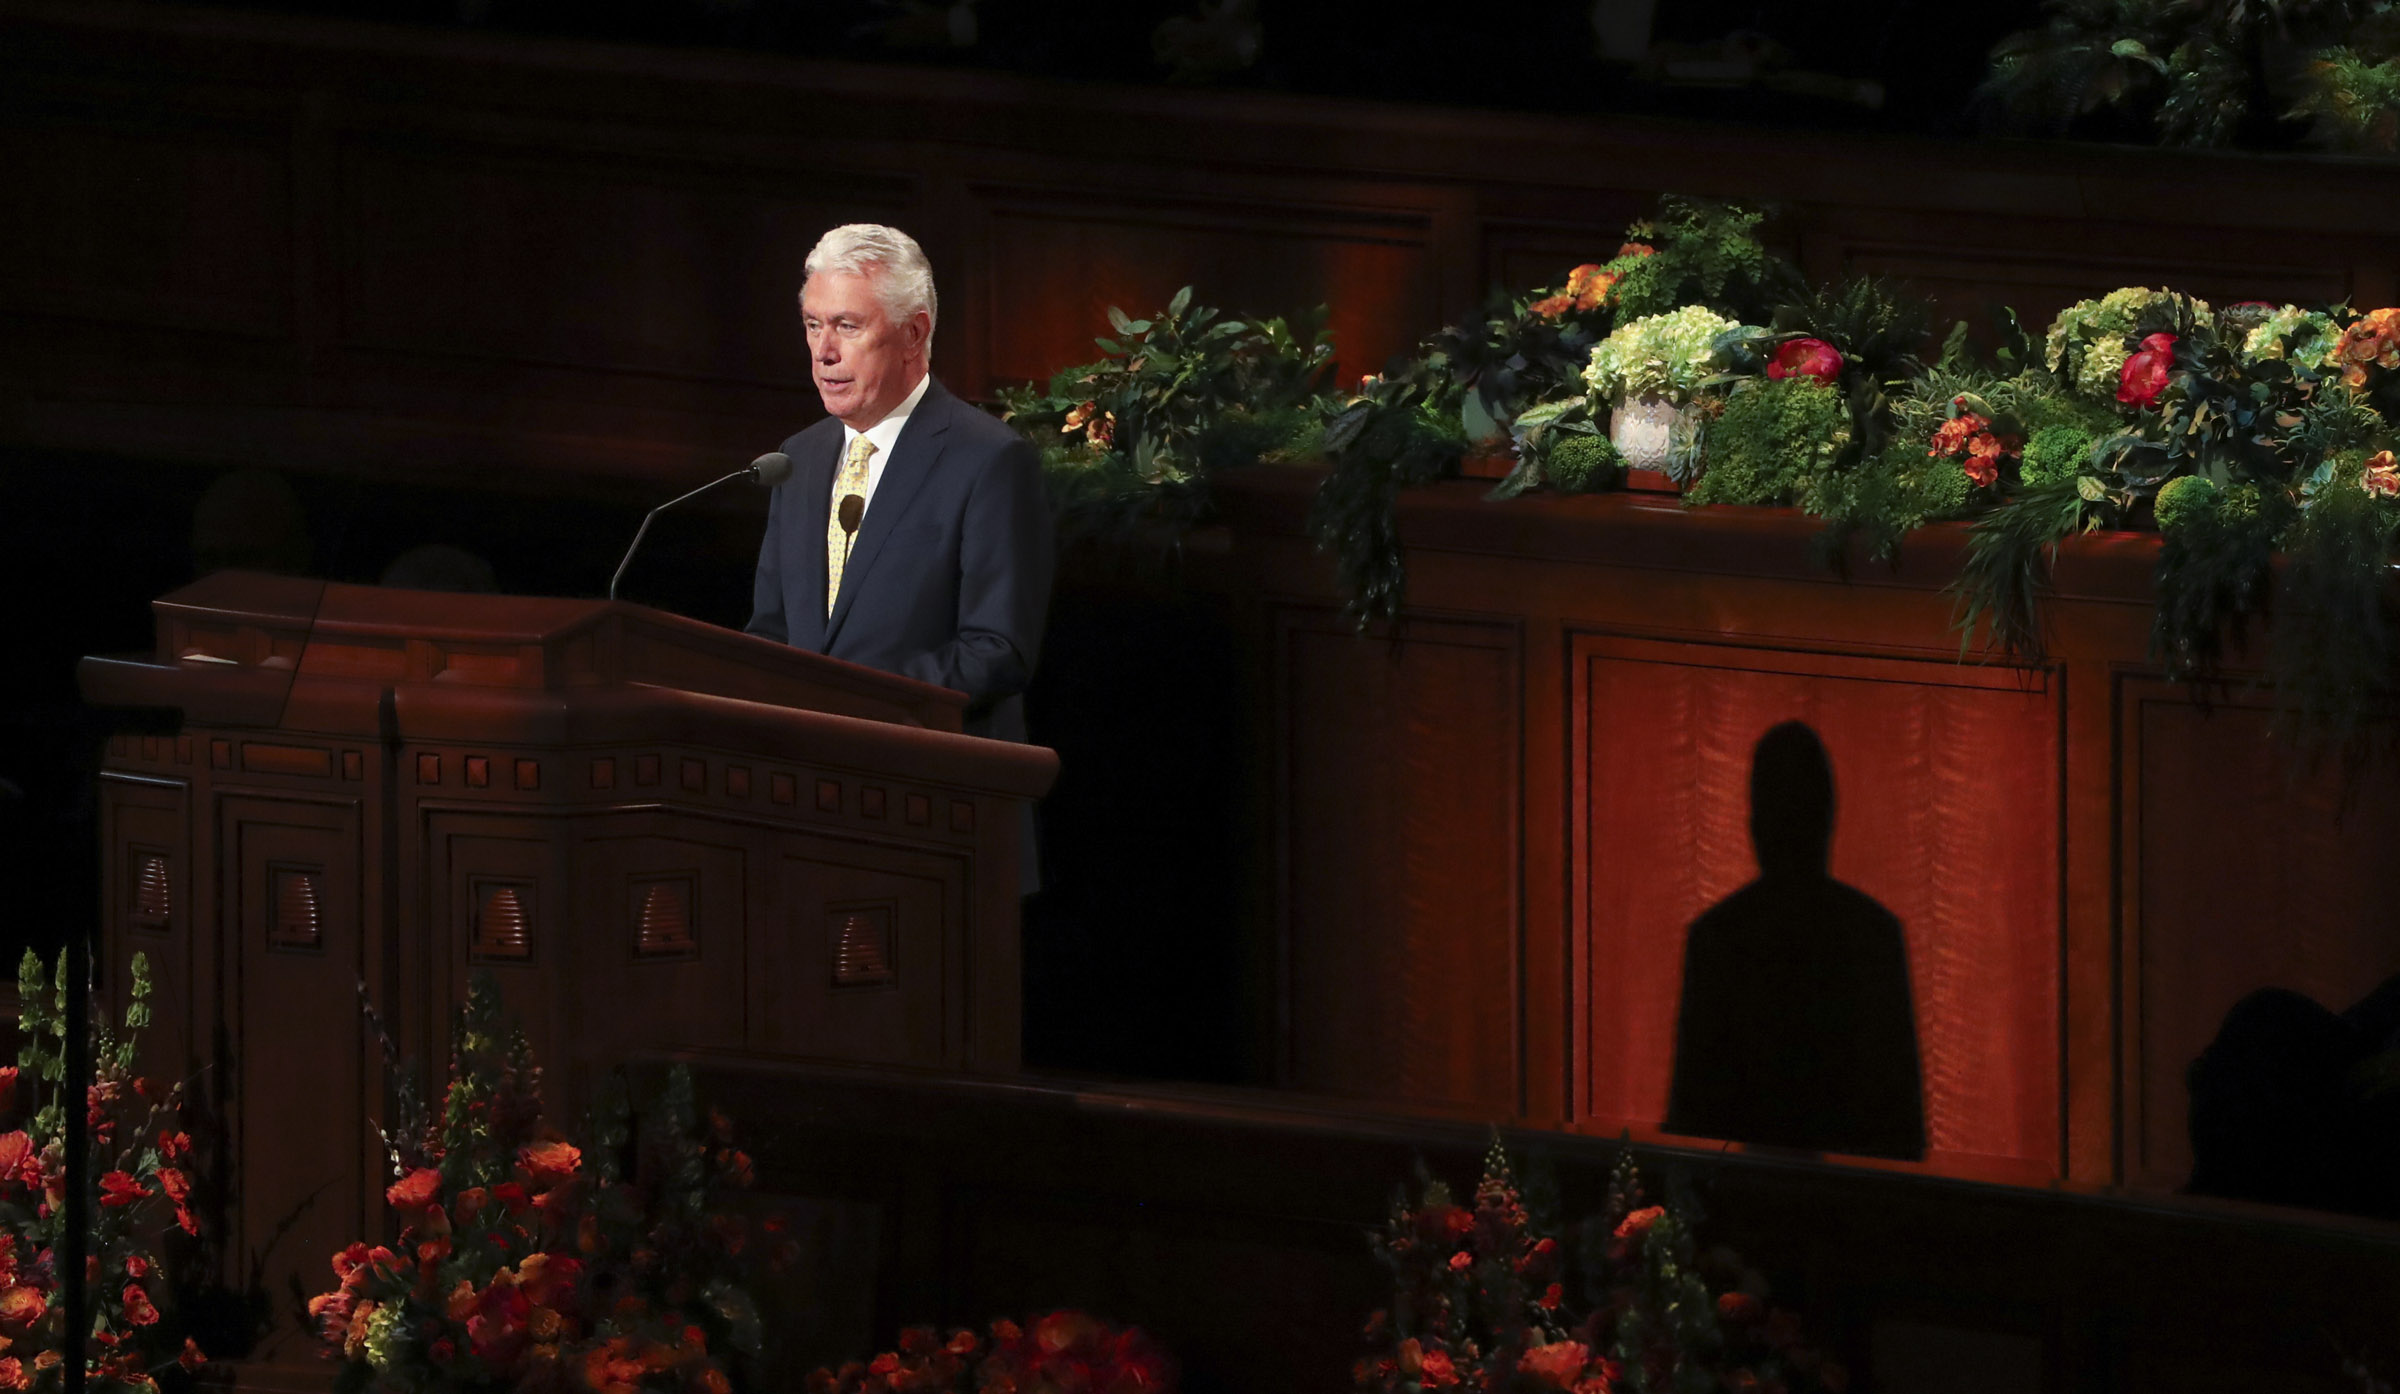 Elder Dieter F. Uchtdorf of the Quorum of the Twelve Apostles speaks in the Conference Center in Salt Lake City during the morning session of the 189th Annual General Conference of The Church of Jesus Christ of Latter-day Saints on Saturday, April 6, 2019.